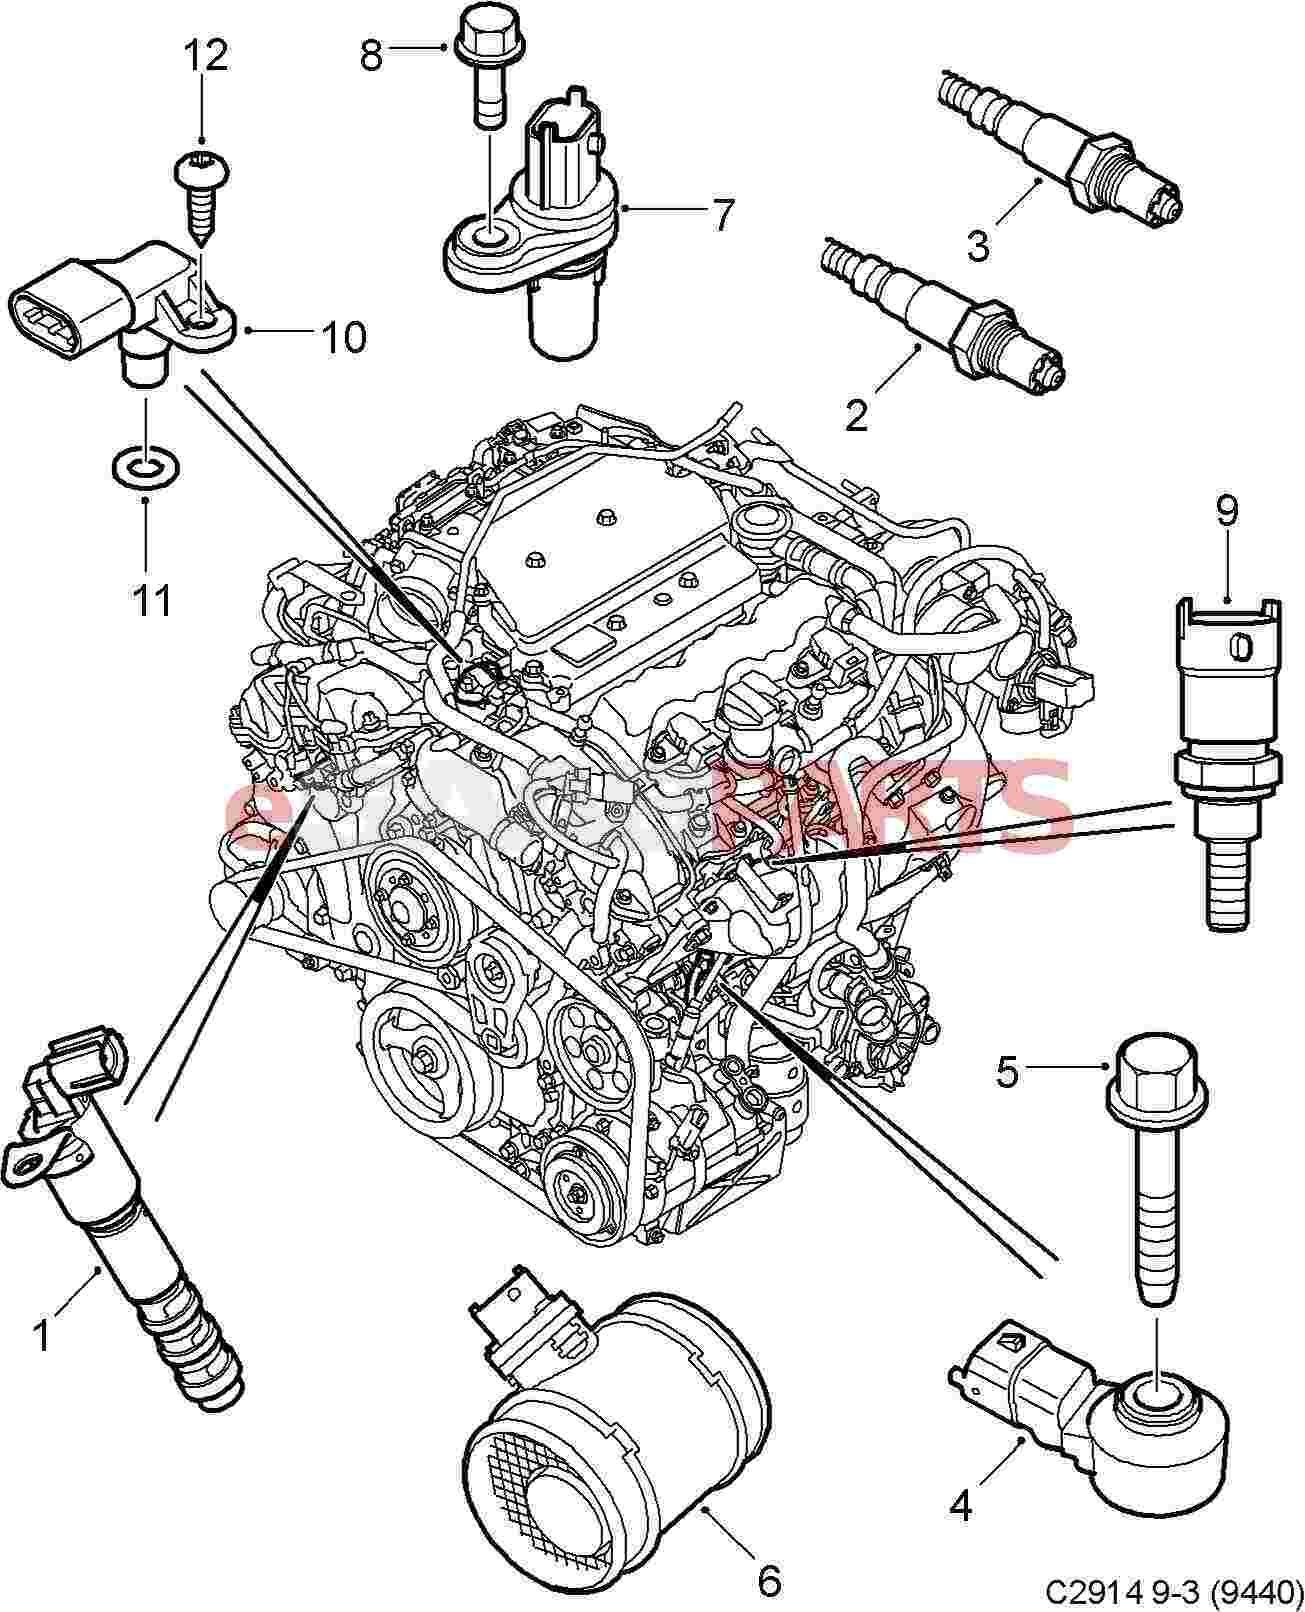 Viewparts together with Ignition Coil Wiring Diagram together with 3s2sl Crankshaft Position Sensor 2006 F150 5 4 also 1988 Chevy Pickup Coil Test together with Wiring Diagram For Vsm 920 Turn Signal Switch. on subaru electrical diagrams